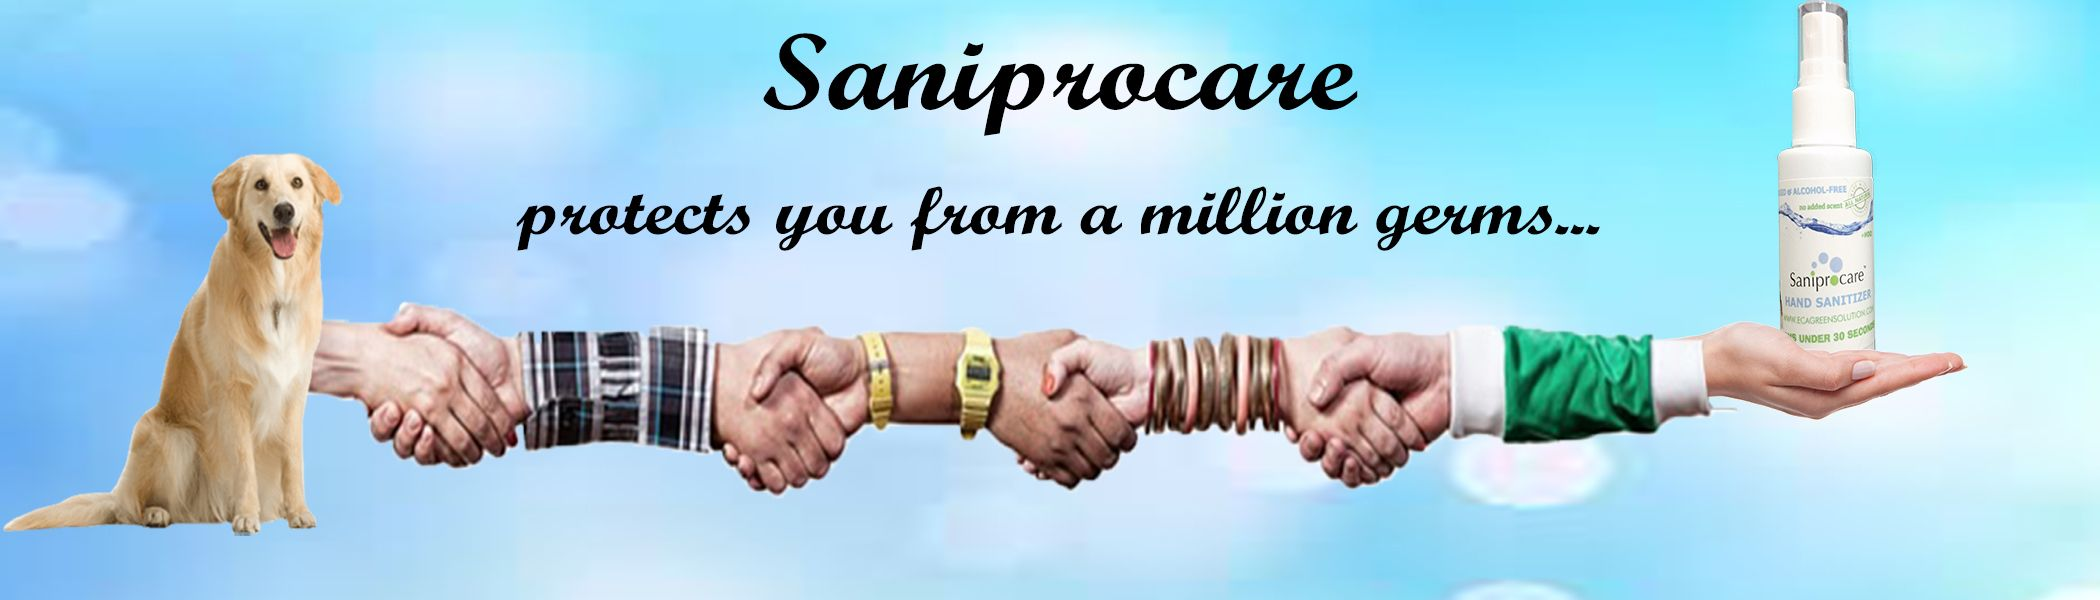 Saniprocare Hand Sanitizer Will Protect You From Million Of Germs